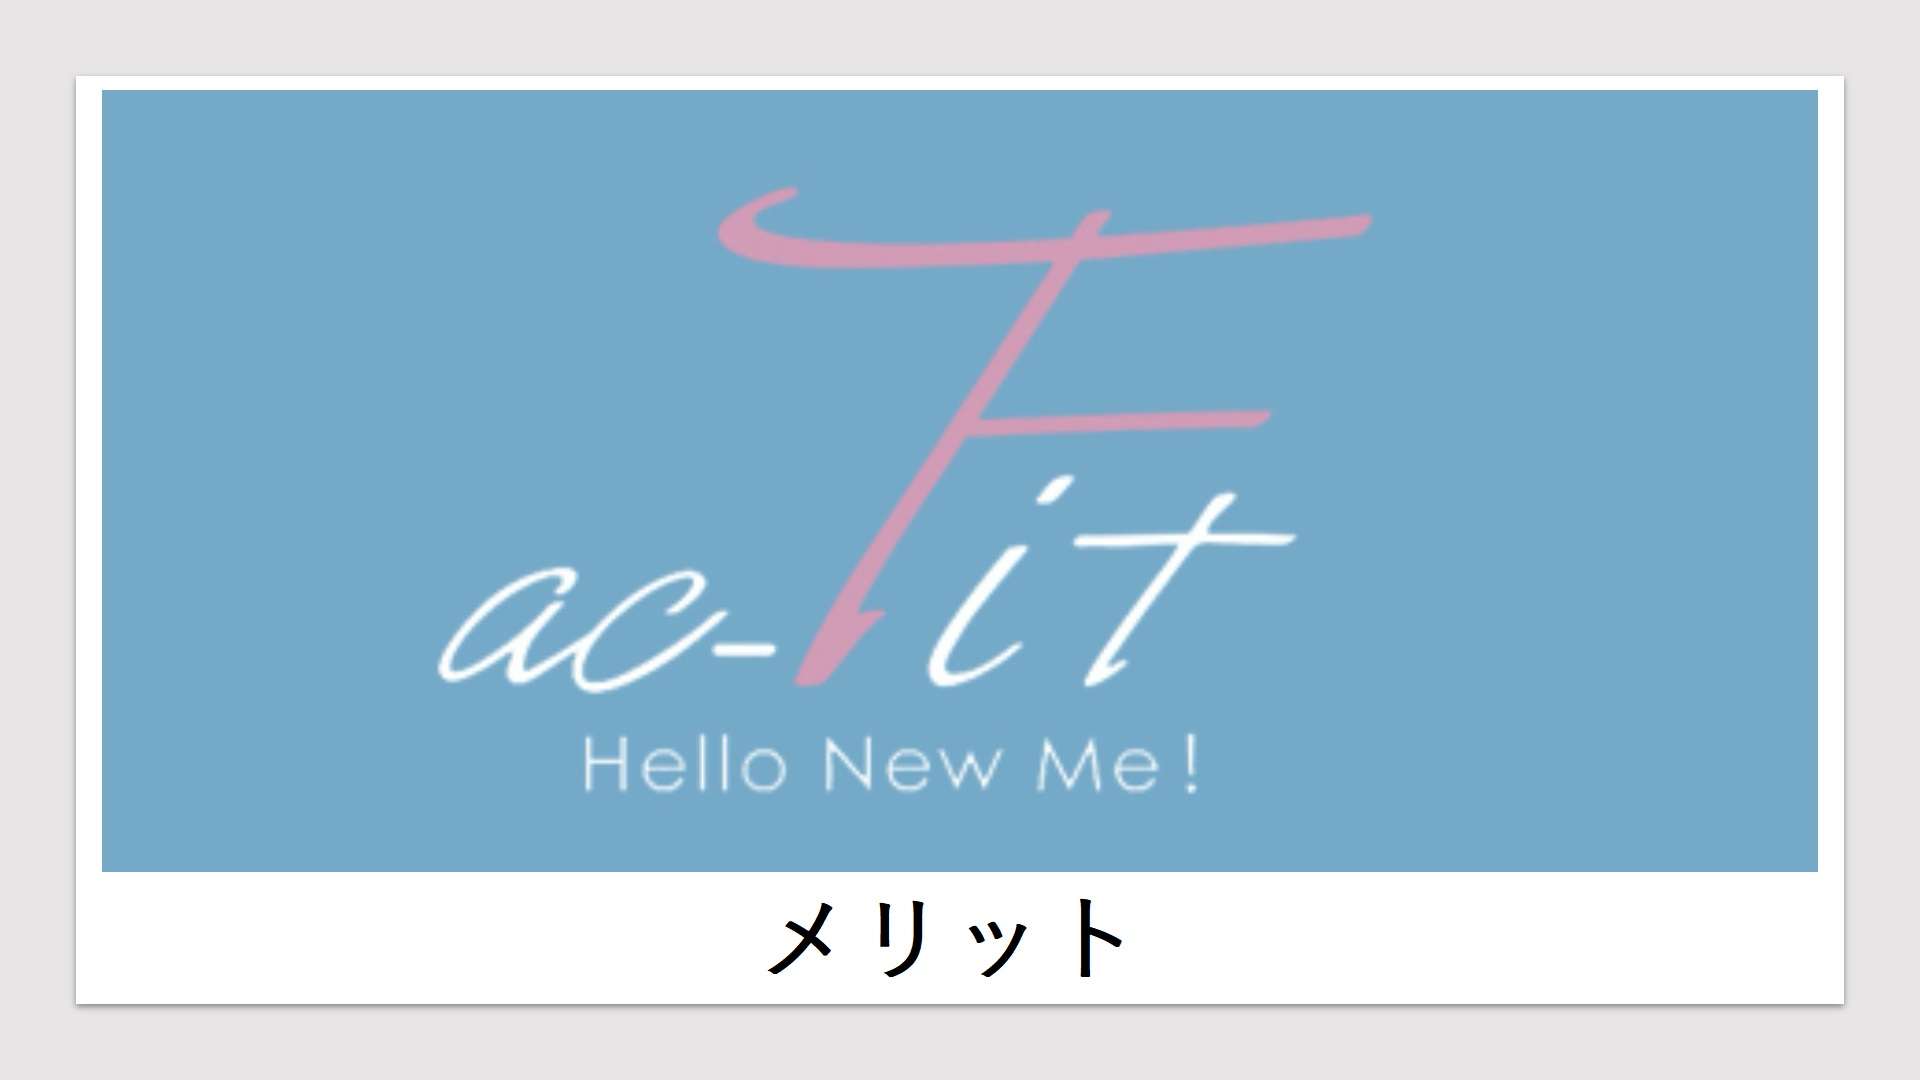 ac-fit(メリット)